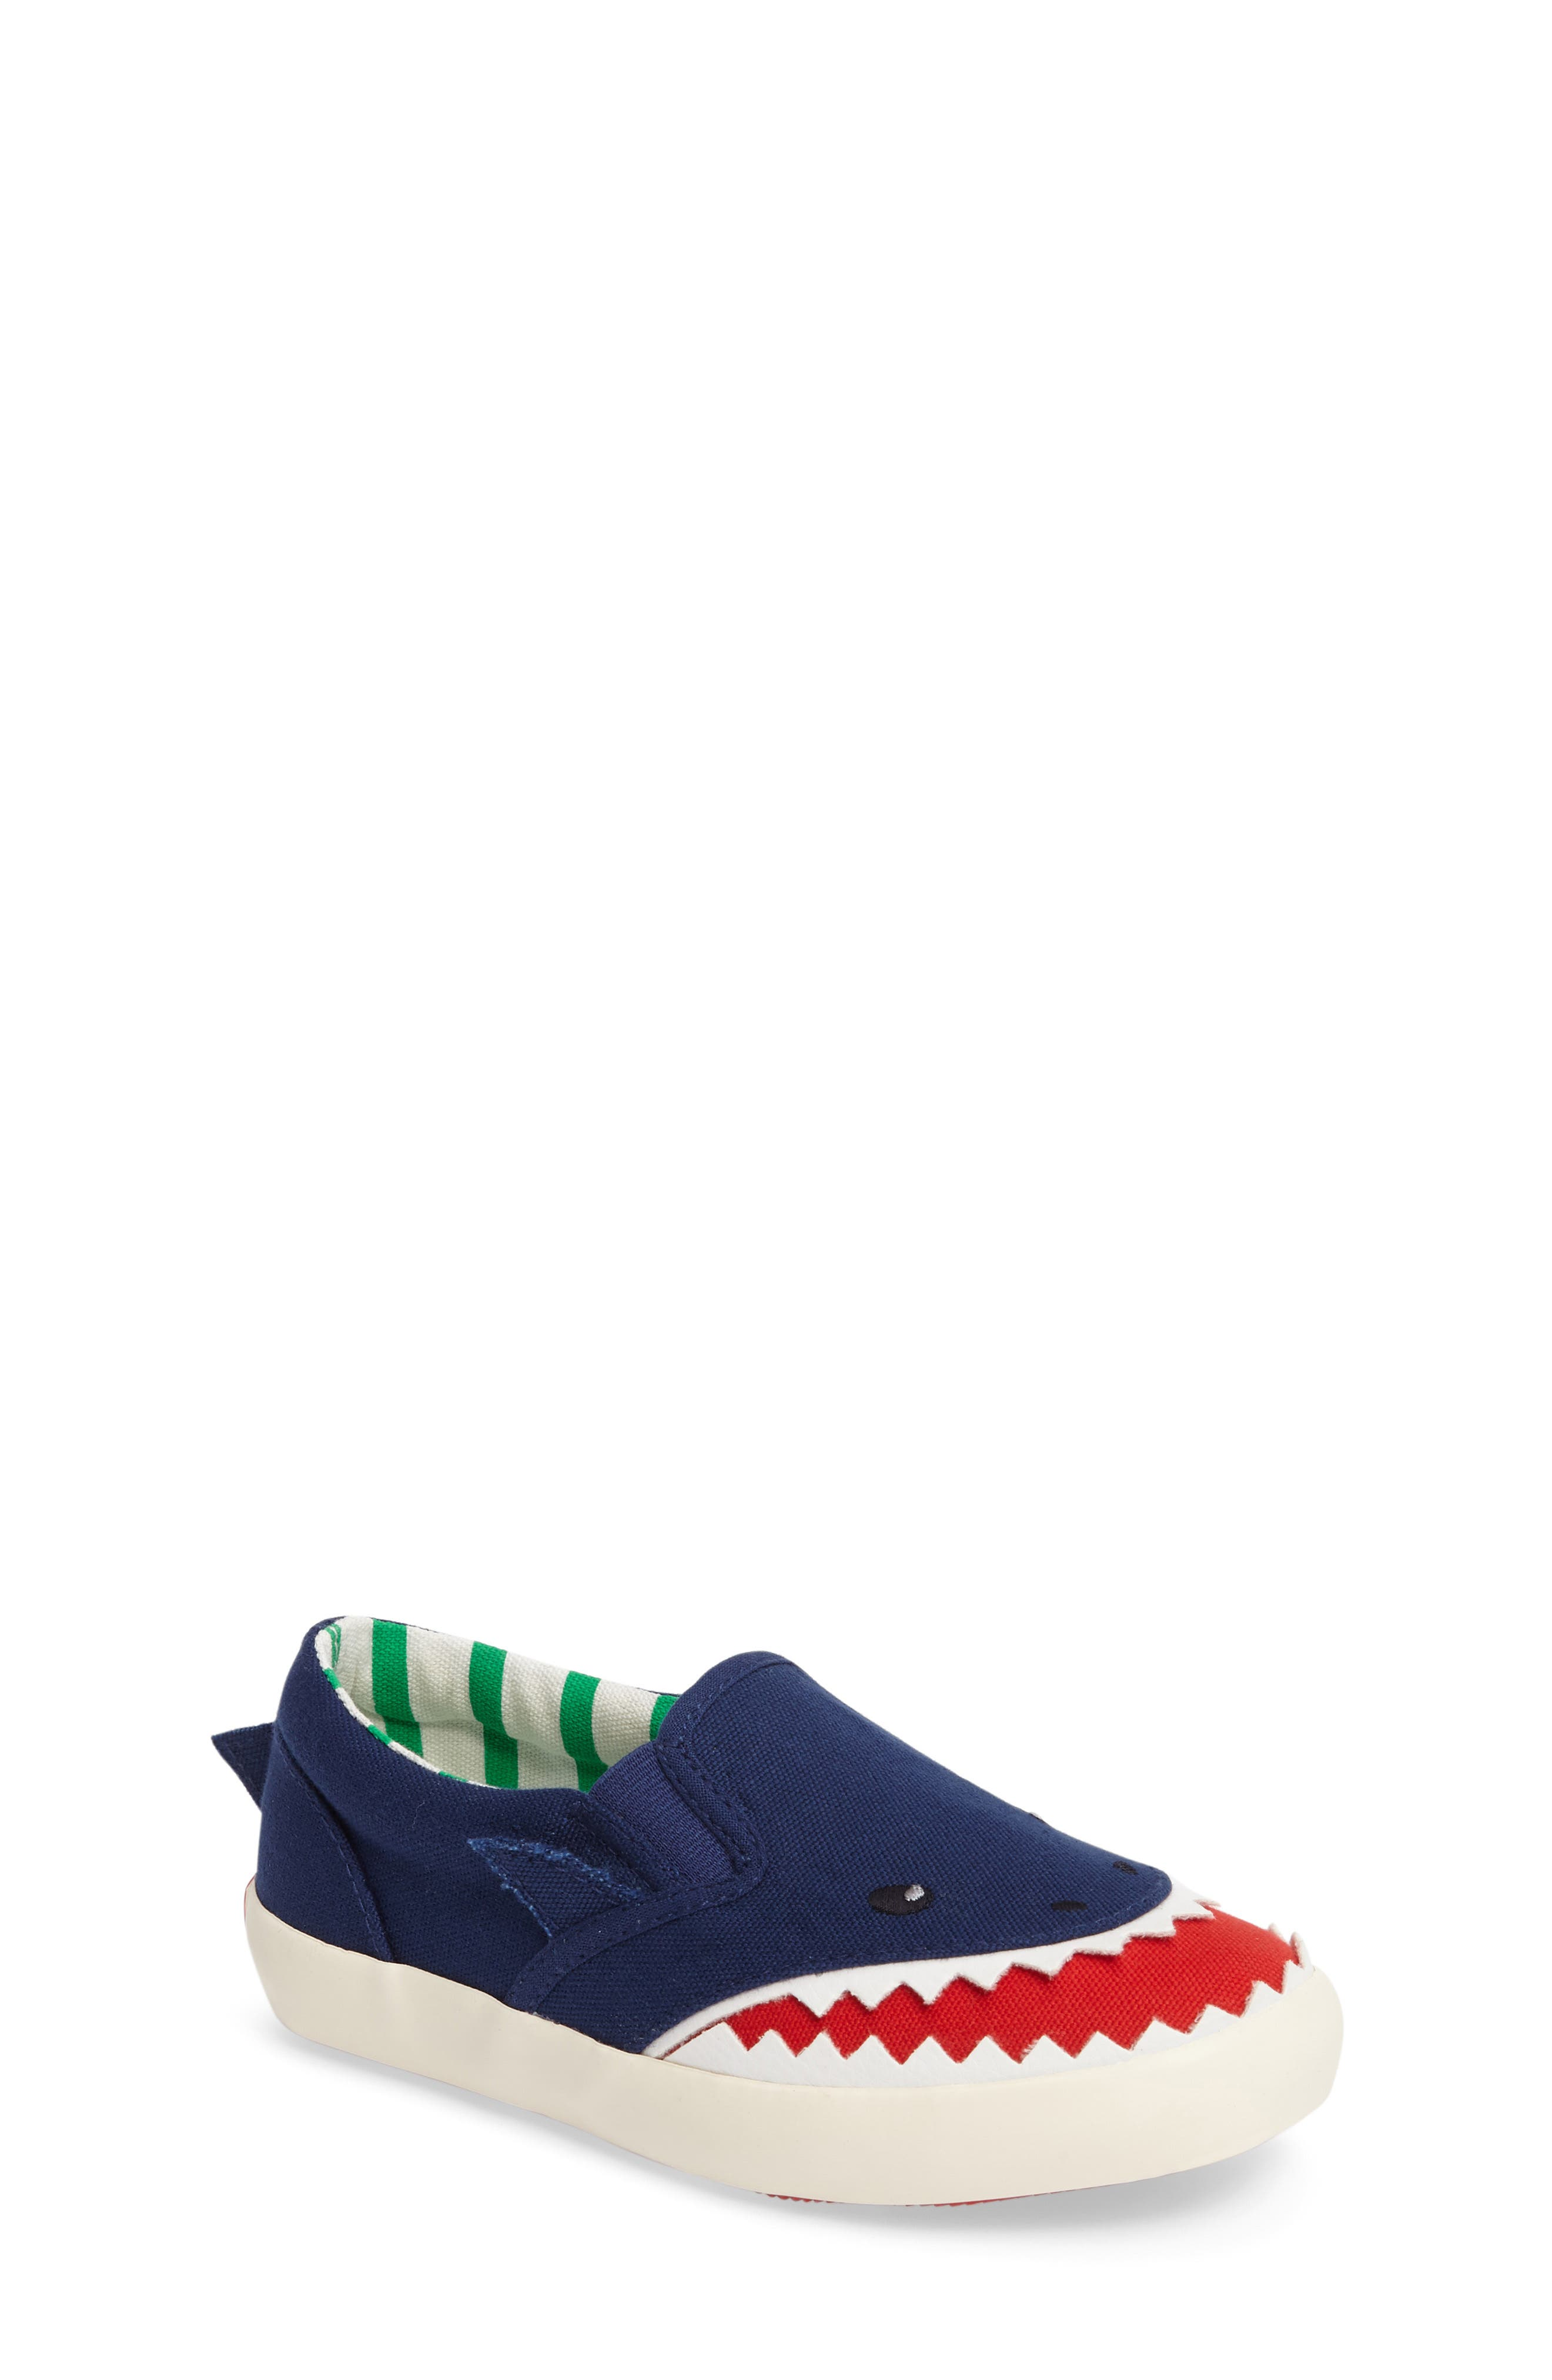 Mini Boden Slip-On Sneaker (Toddler, Little Kid & Big Kid)